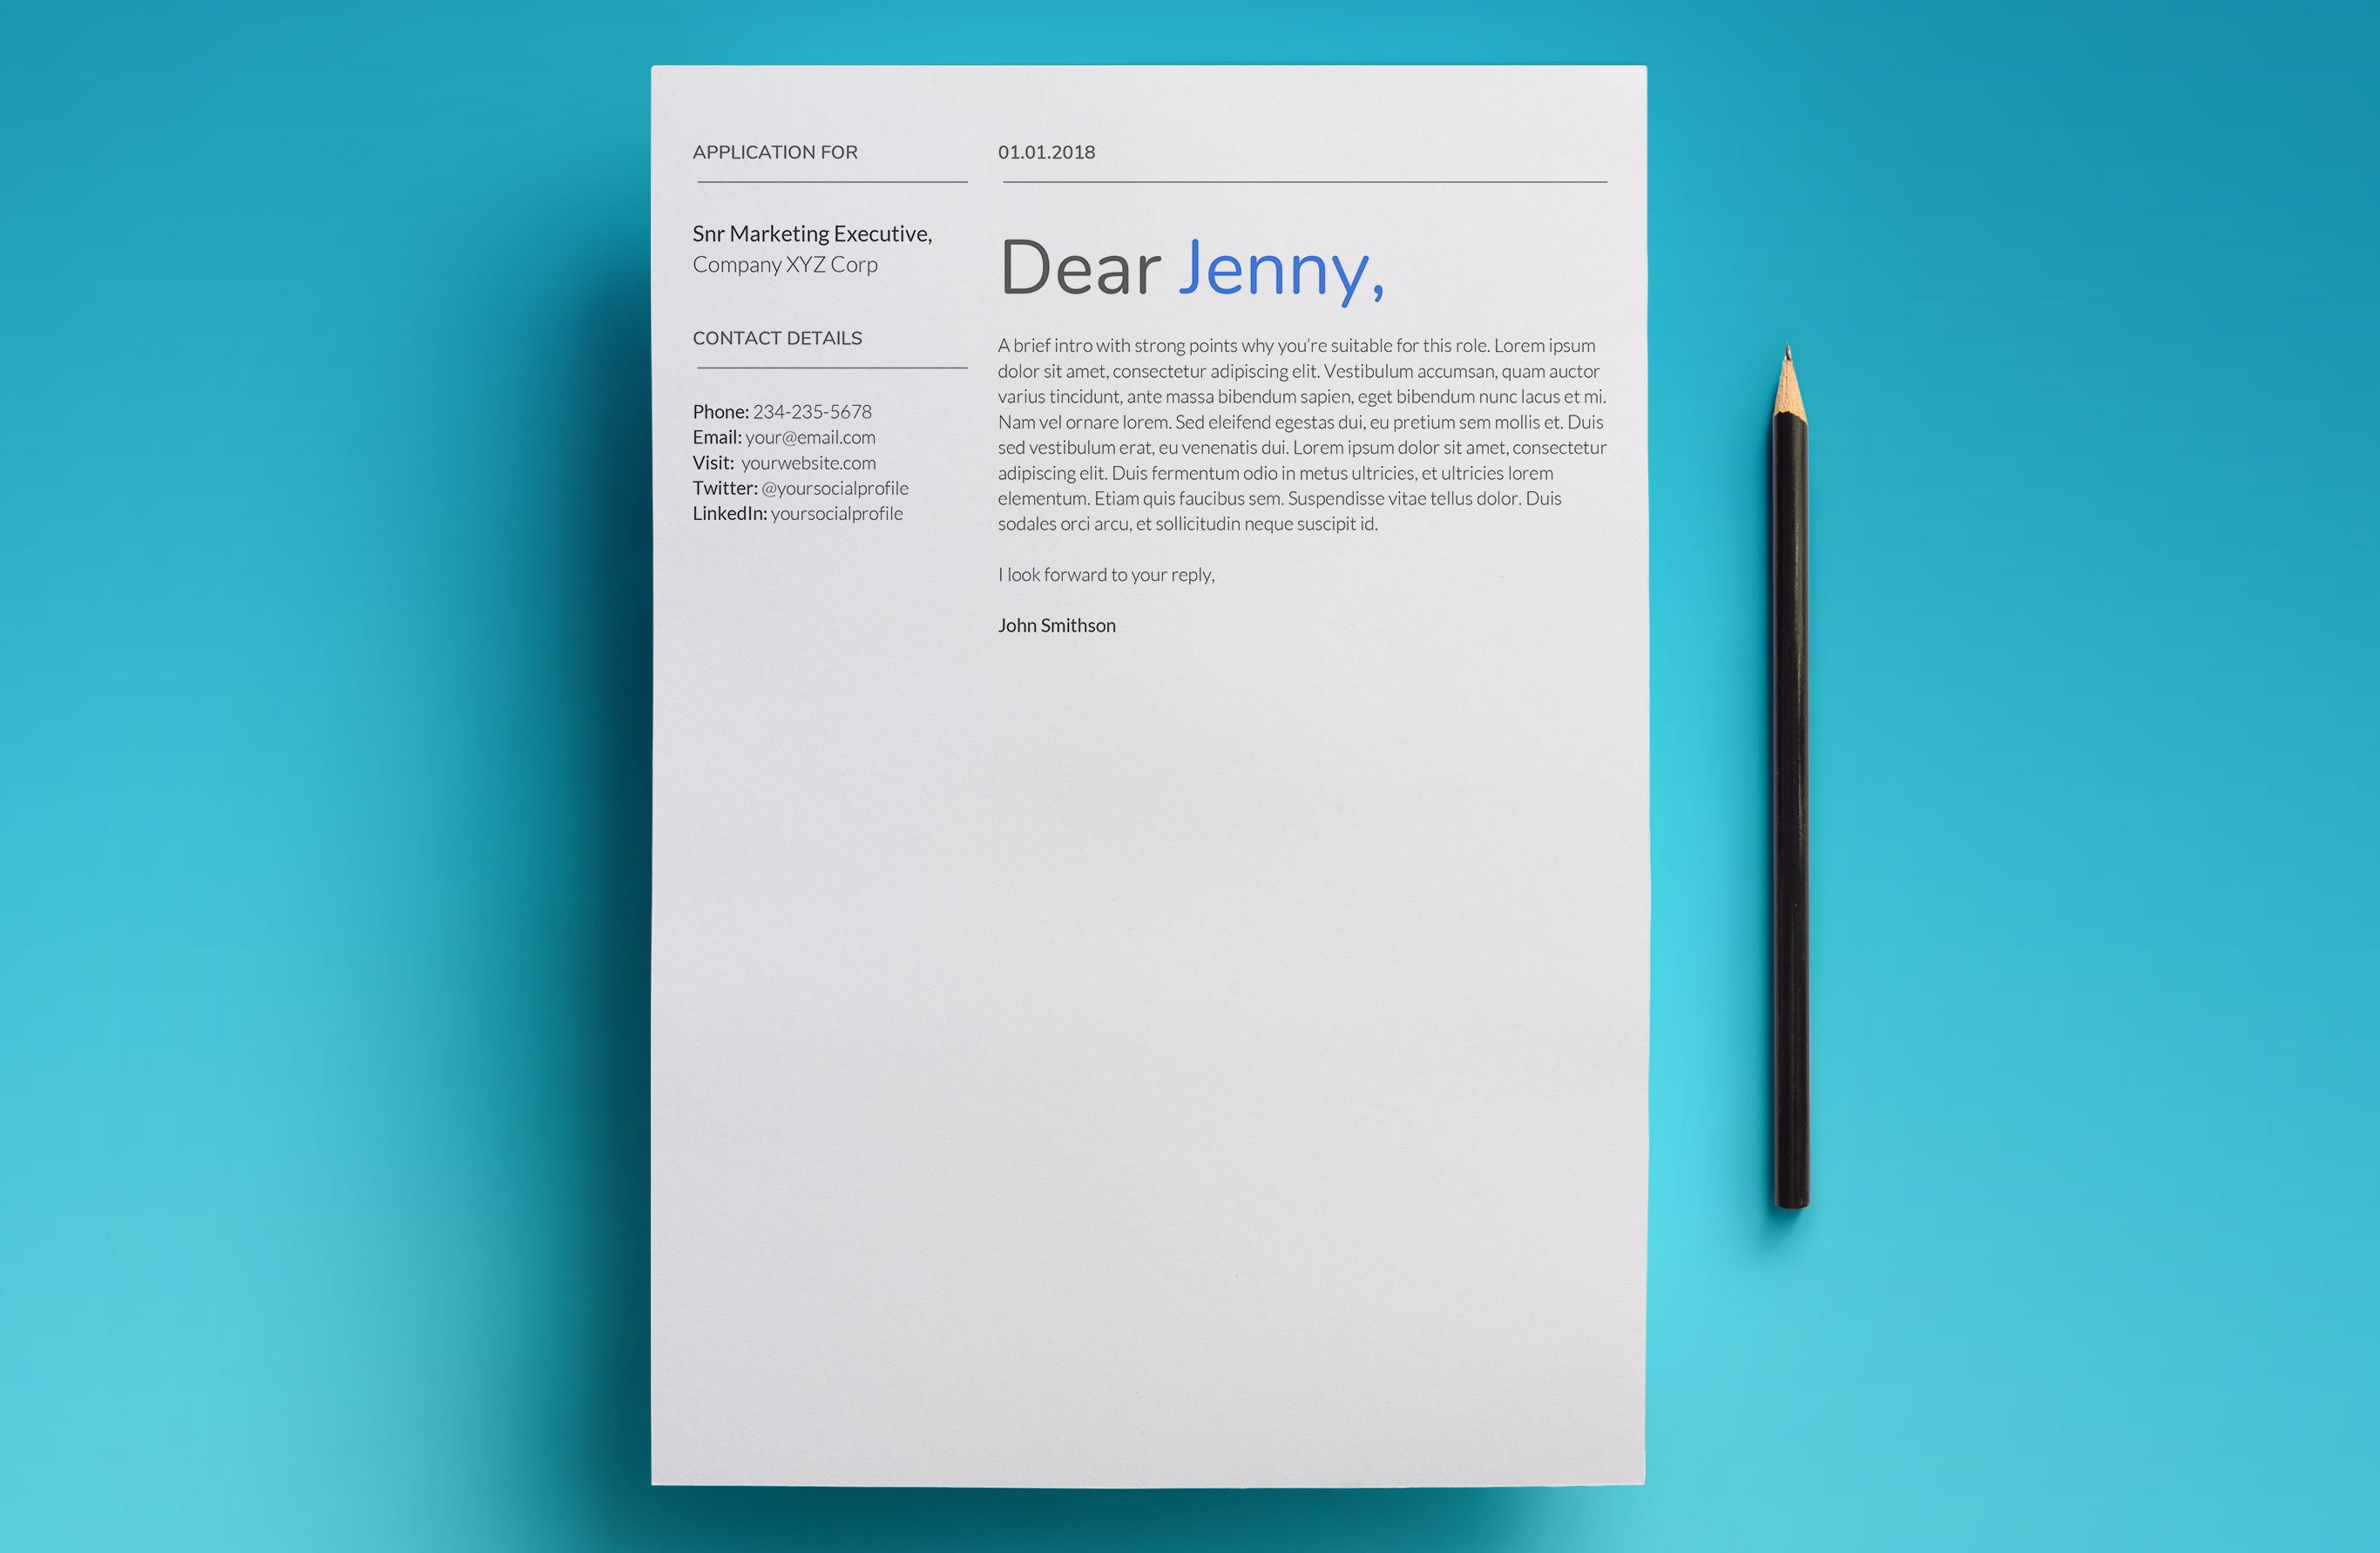 Promote Yourself With This Proven, Professional Resume Template For Google  Docs.